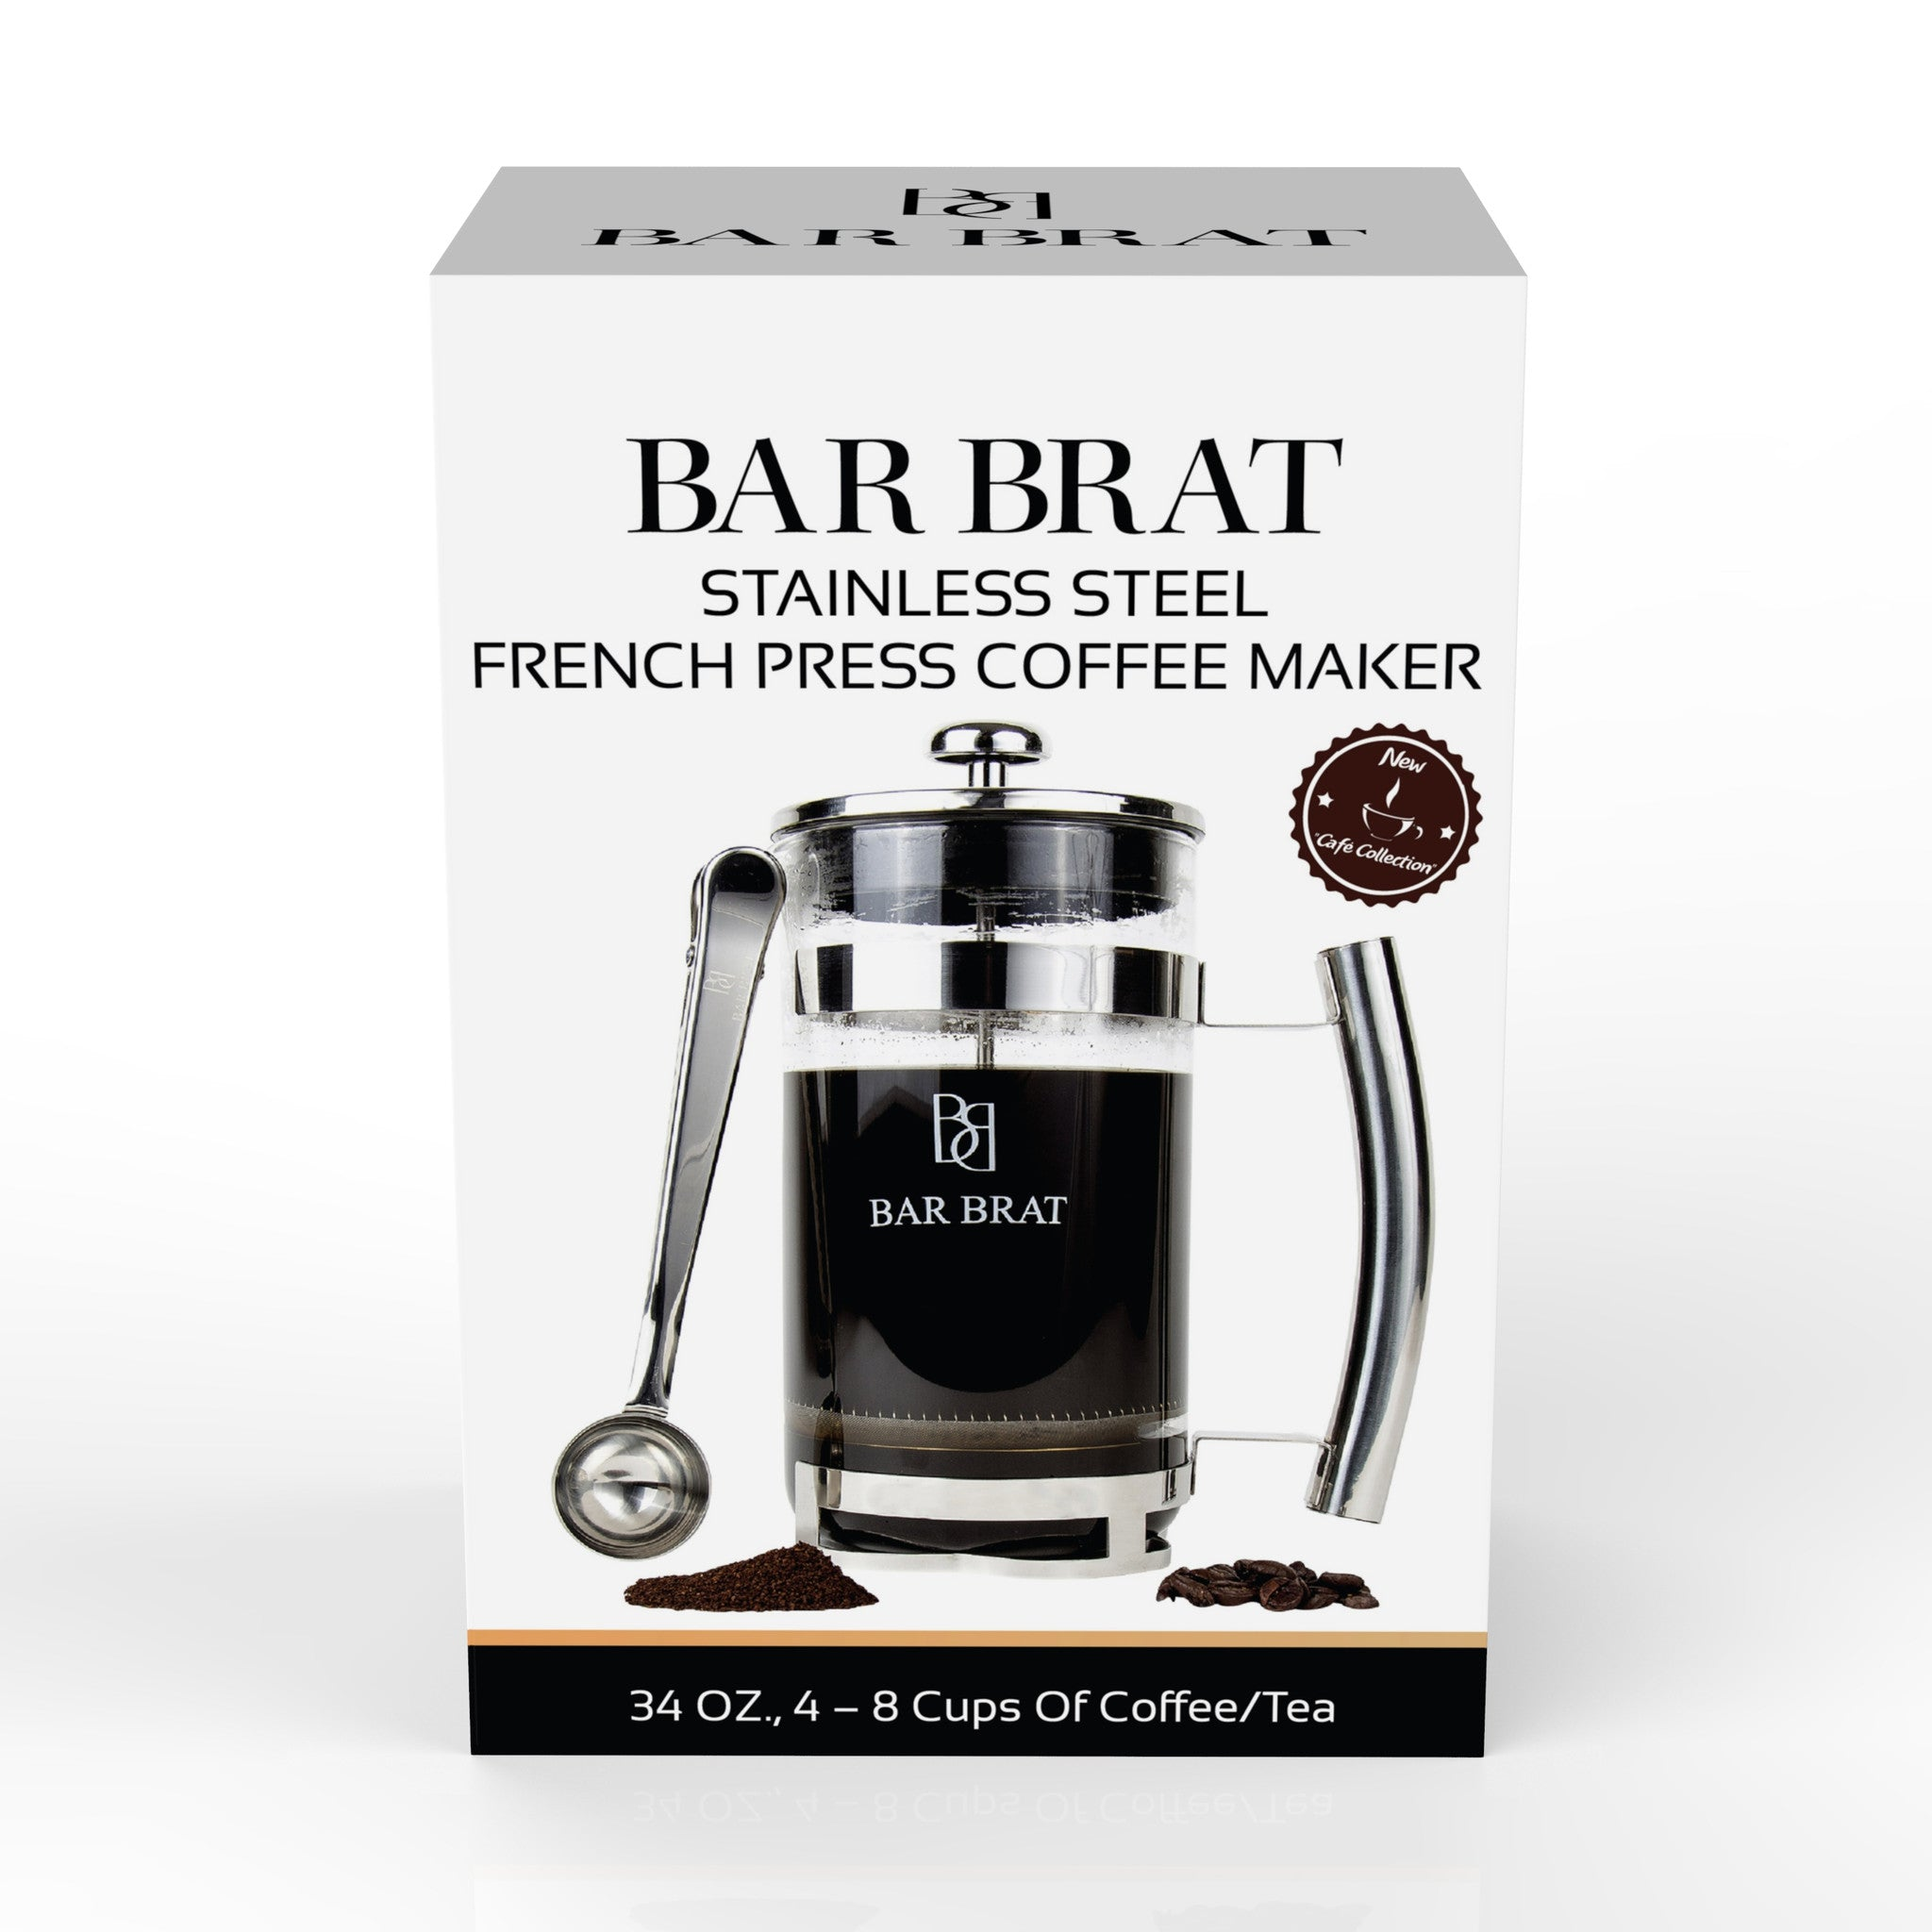 Coffee Maker Stainless Steel Inside : French Press Coffee Maker by Bar Brat / Premium Stainless Steel